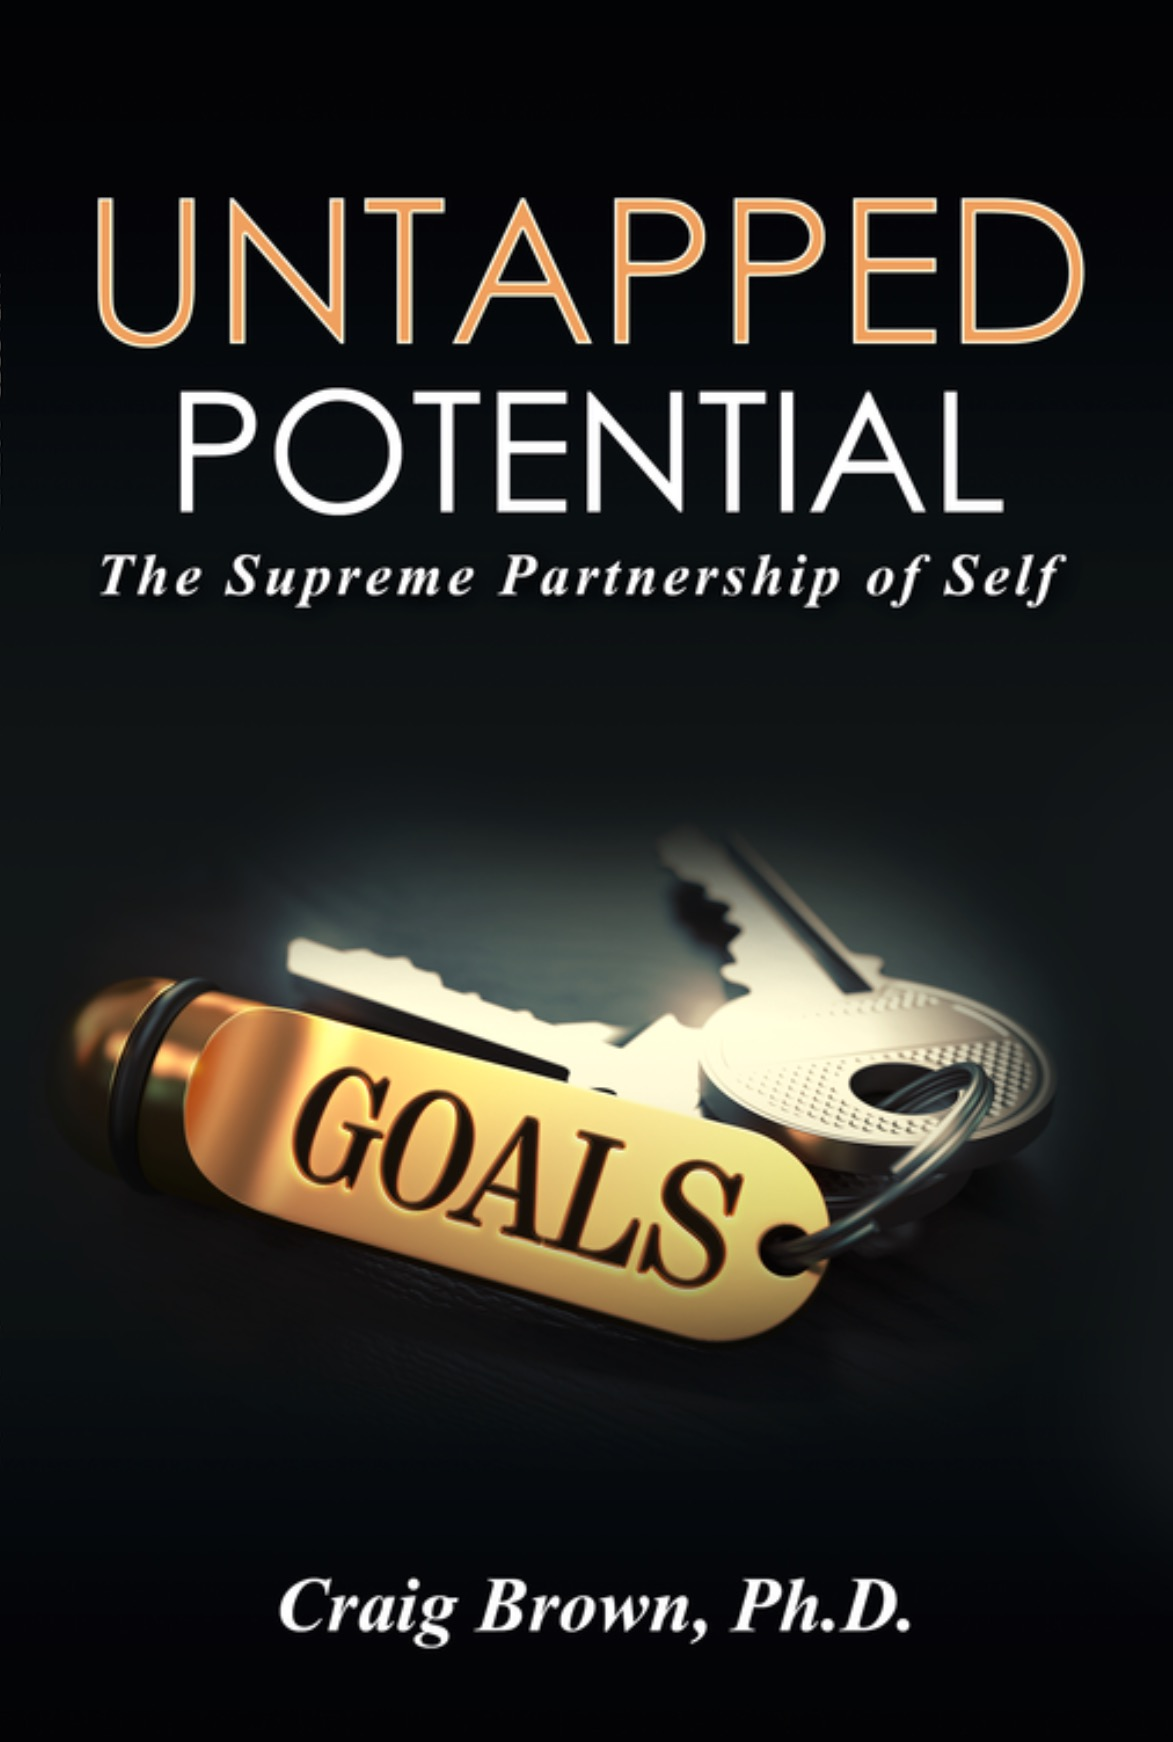 Untapped Potential: The Supreme Partnership of Self